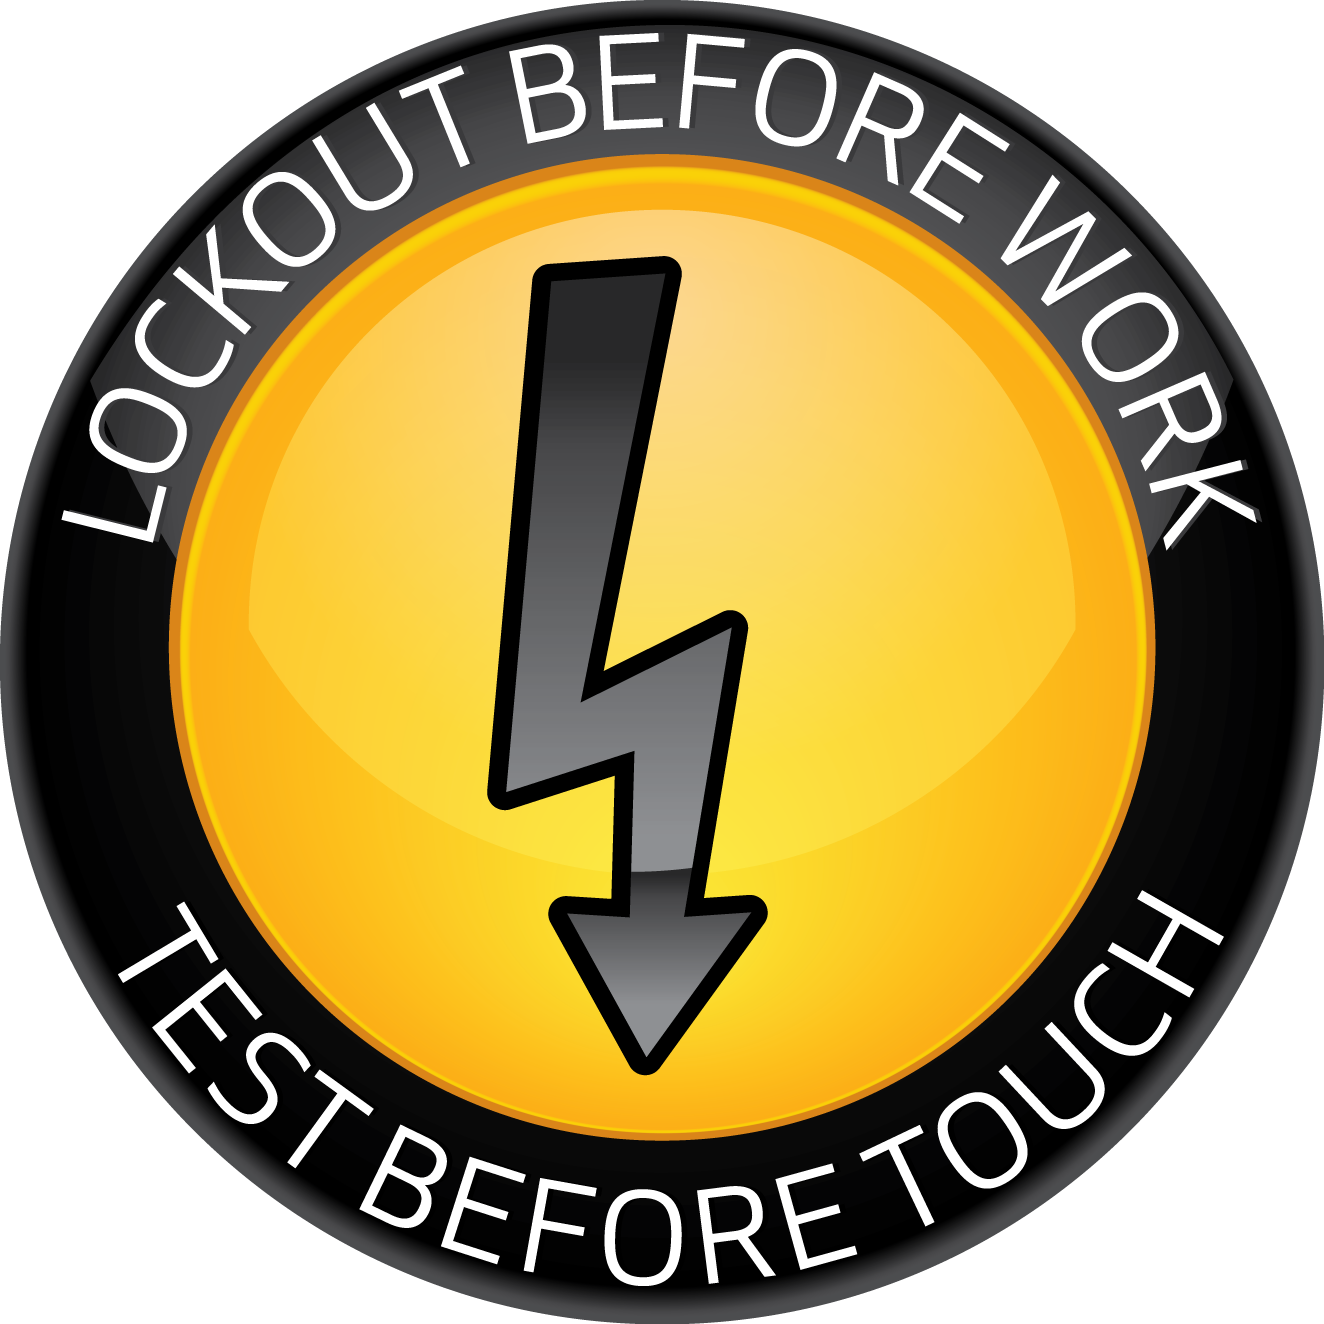 Electricity clipart electricity safety. Lockout tagout loto electrical